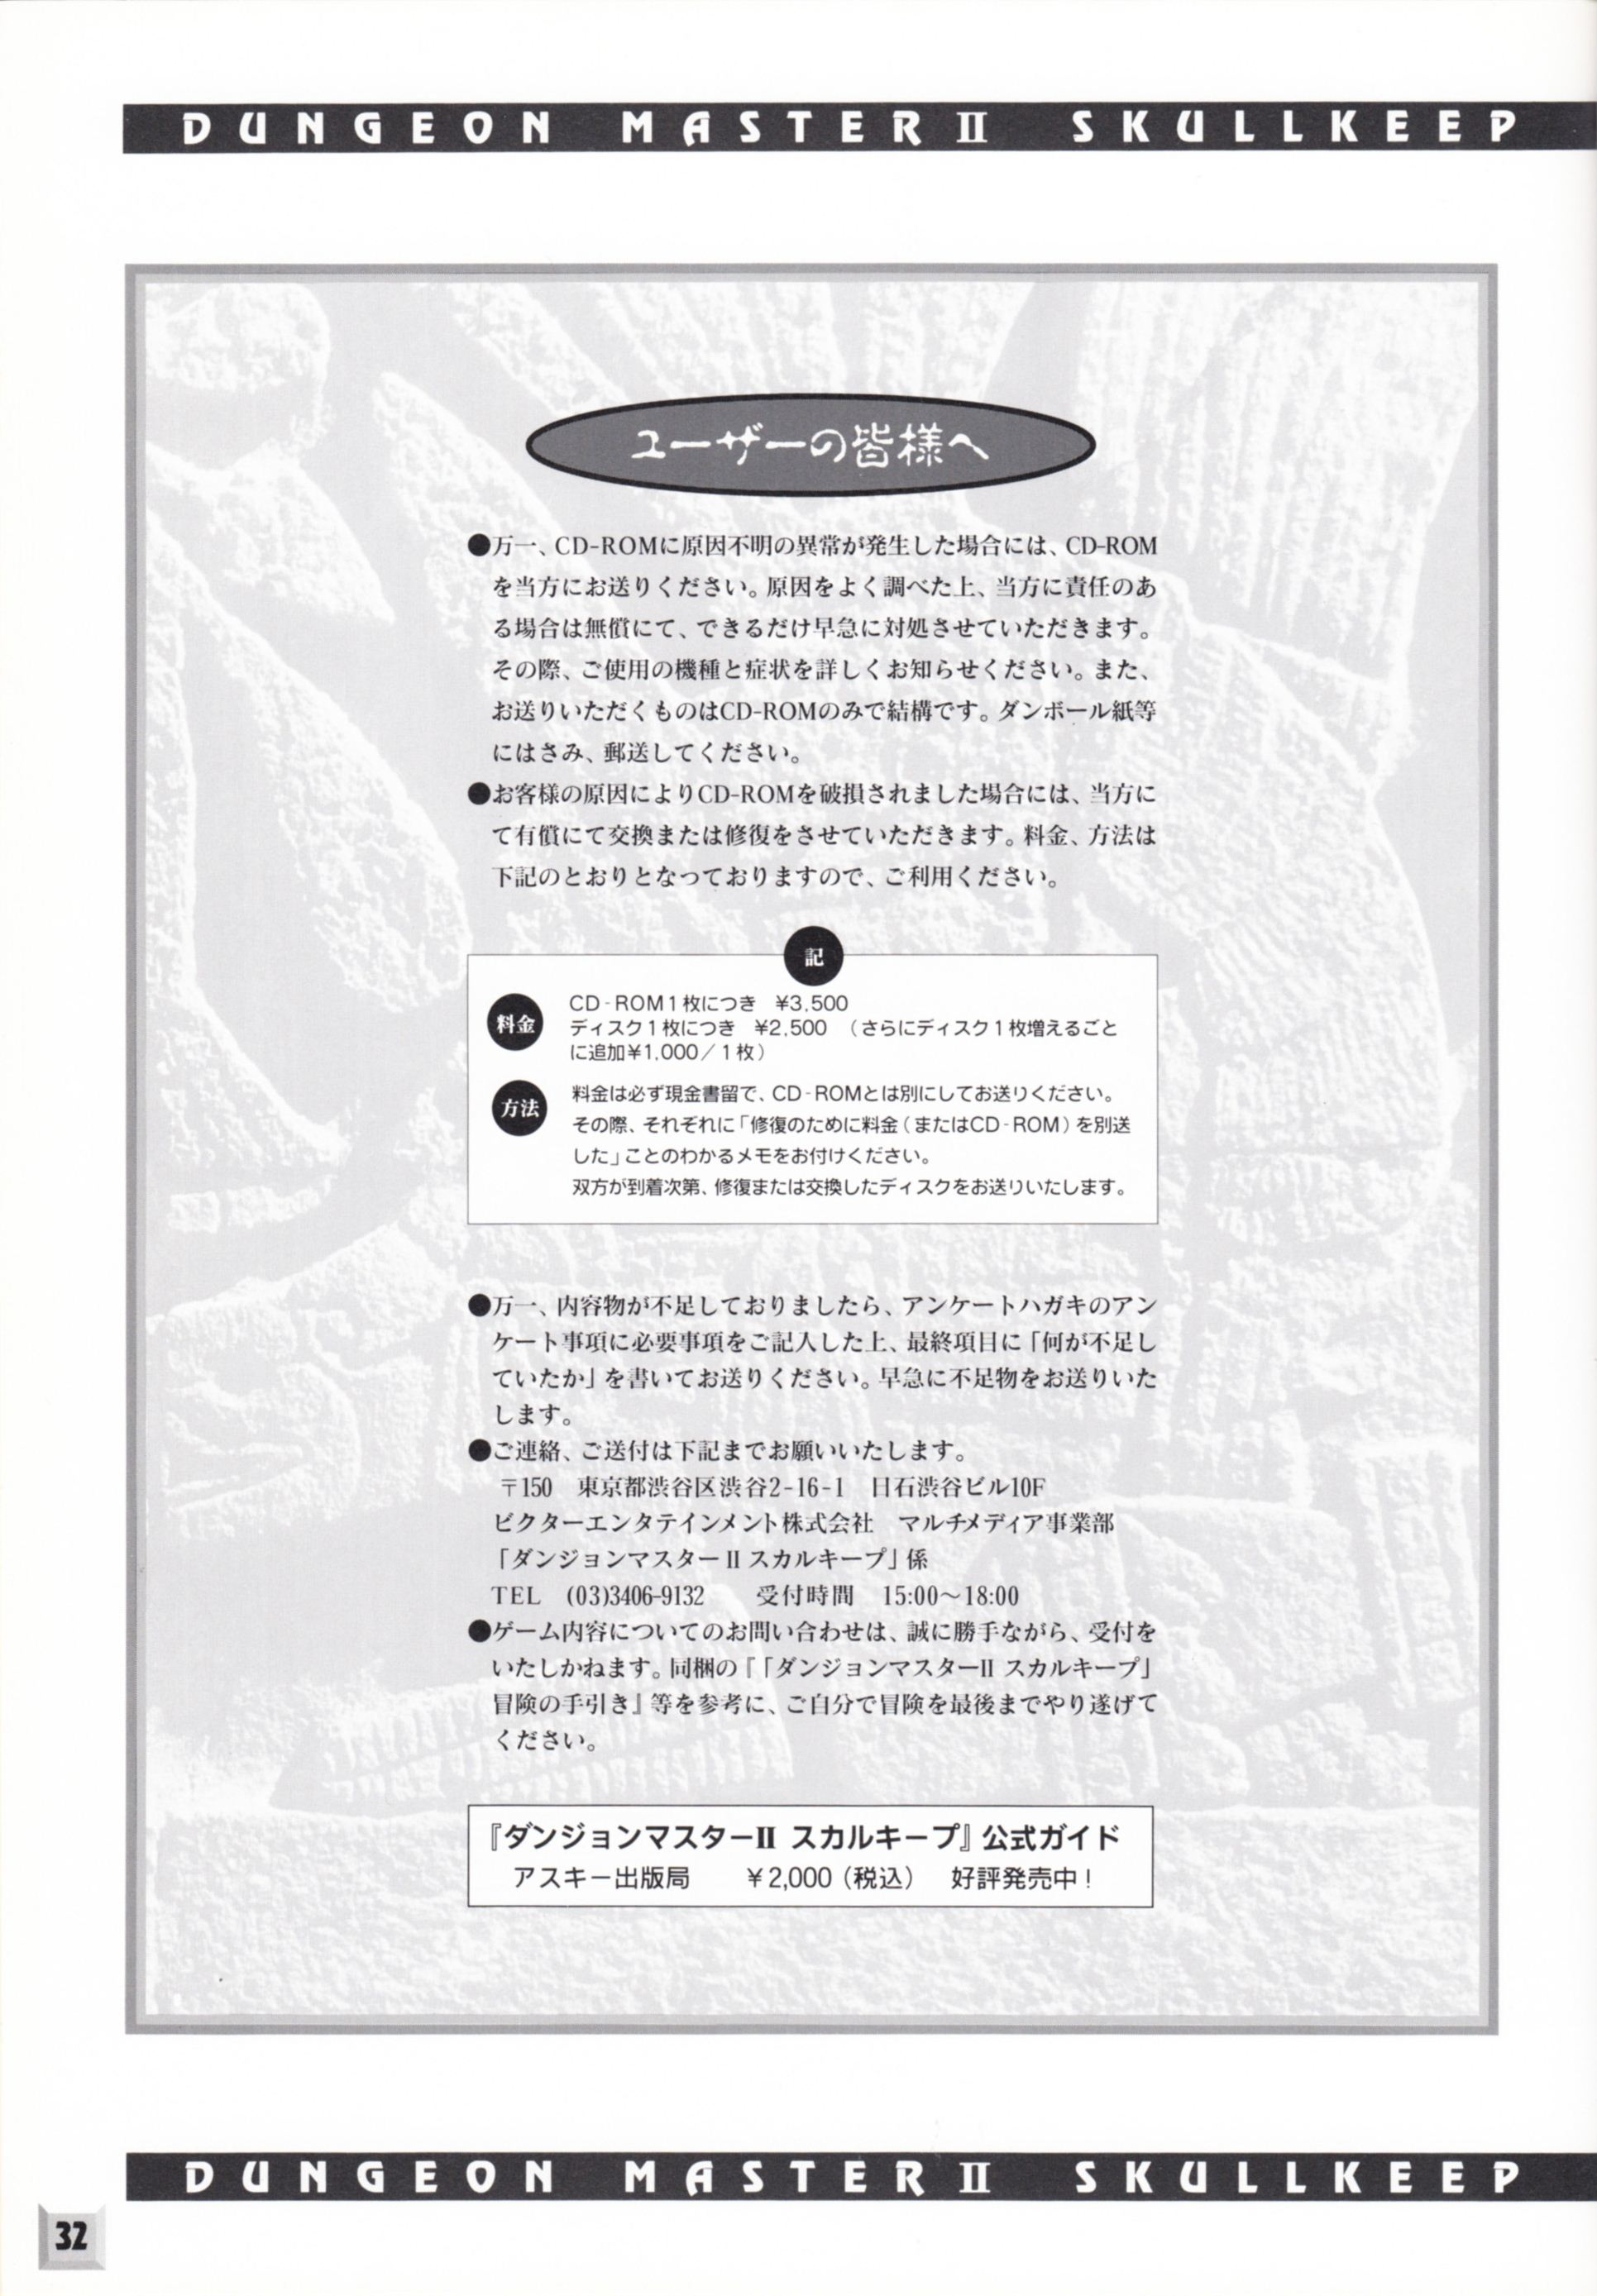 Game - Dungeon Master II - JP - PC-9821 - An Operation Manual - Page 034 - Scan